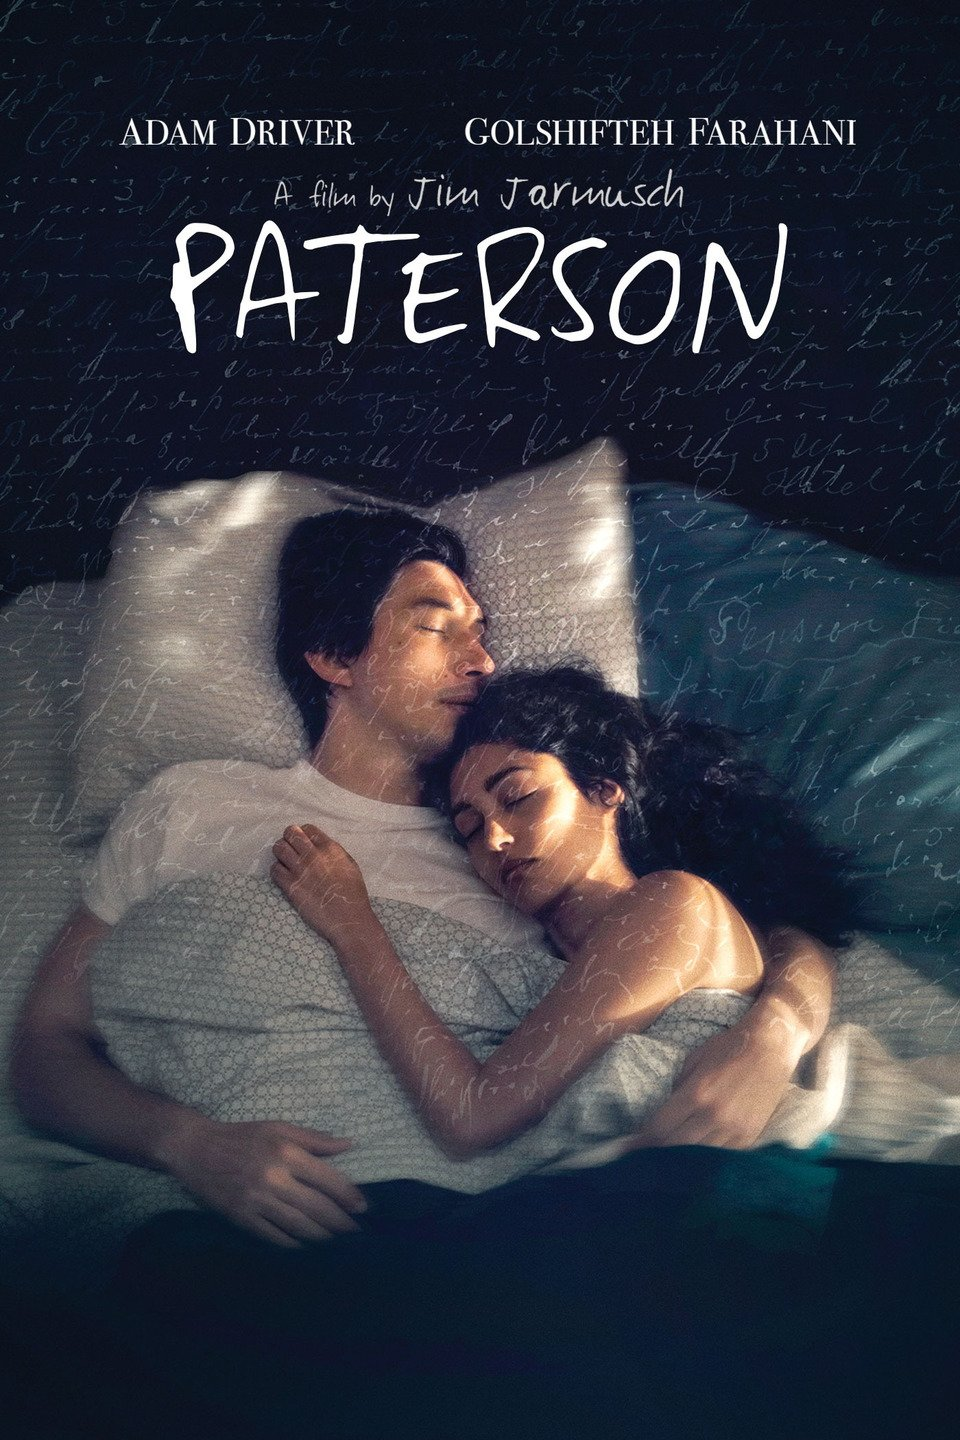 Image result for paterson film jim jarmusch